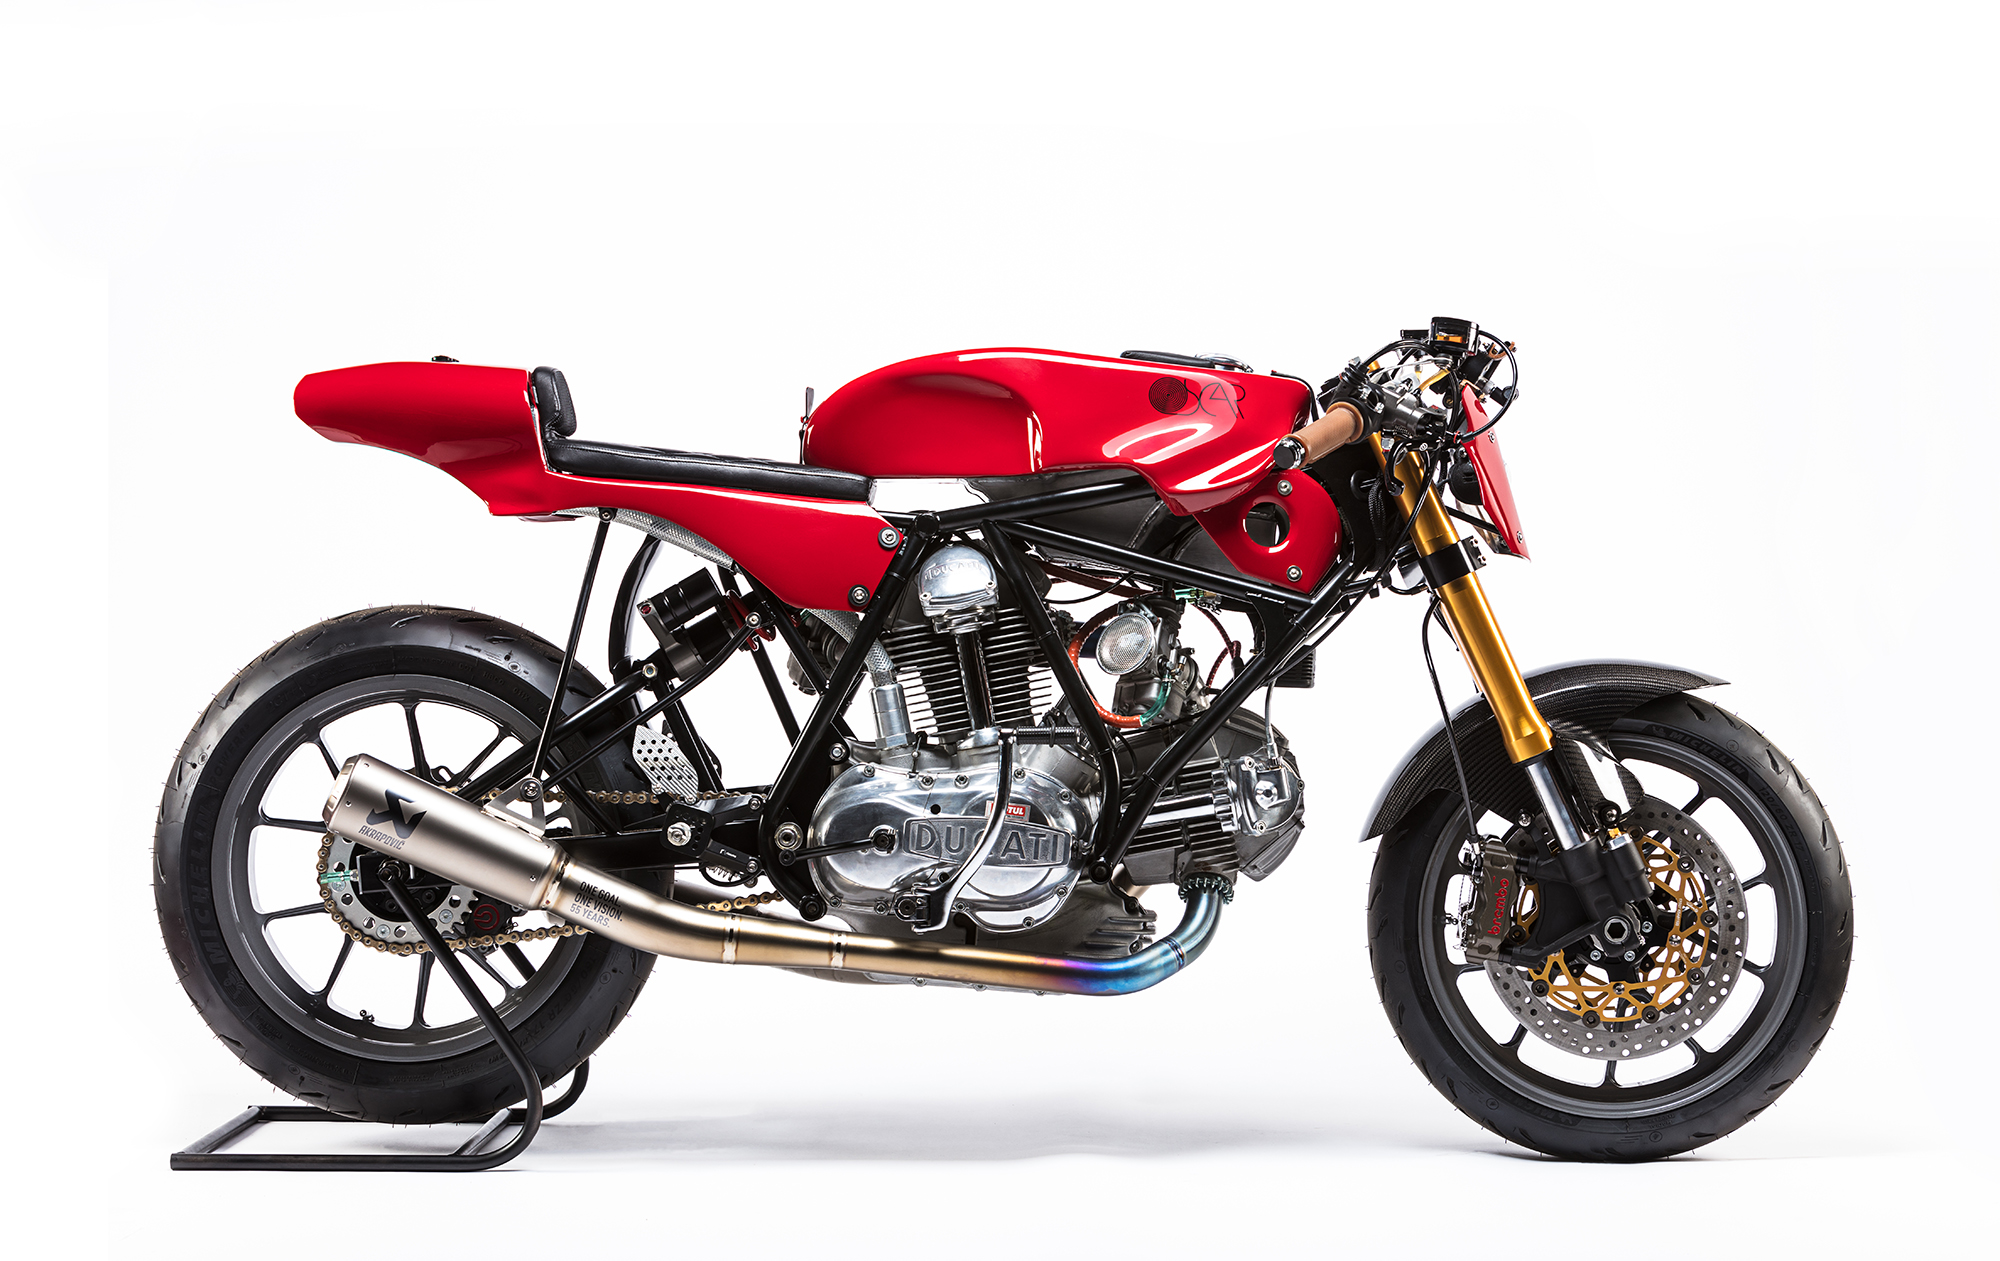 Alpinestars celebrate 55th birthday with custom Ducati